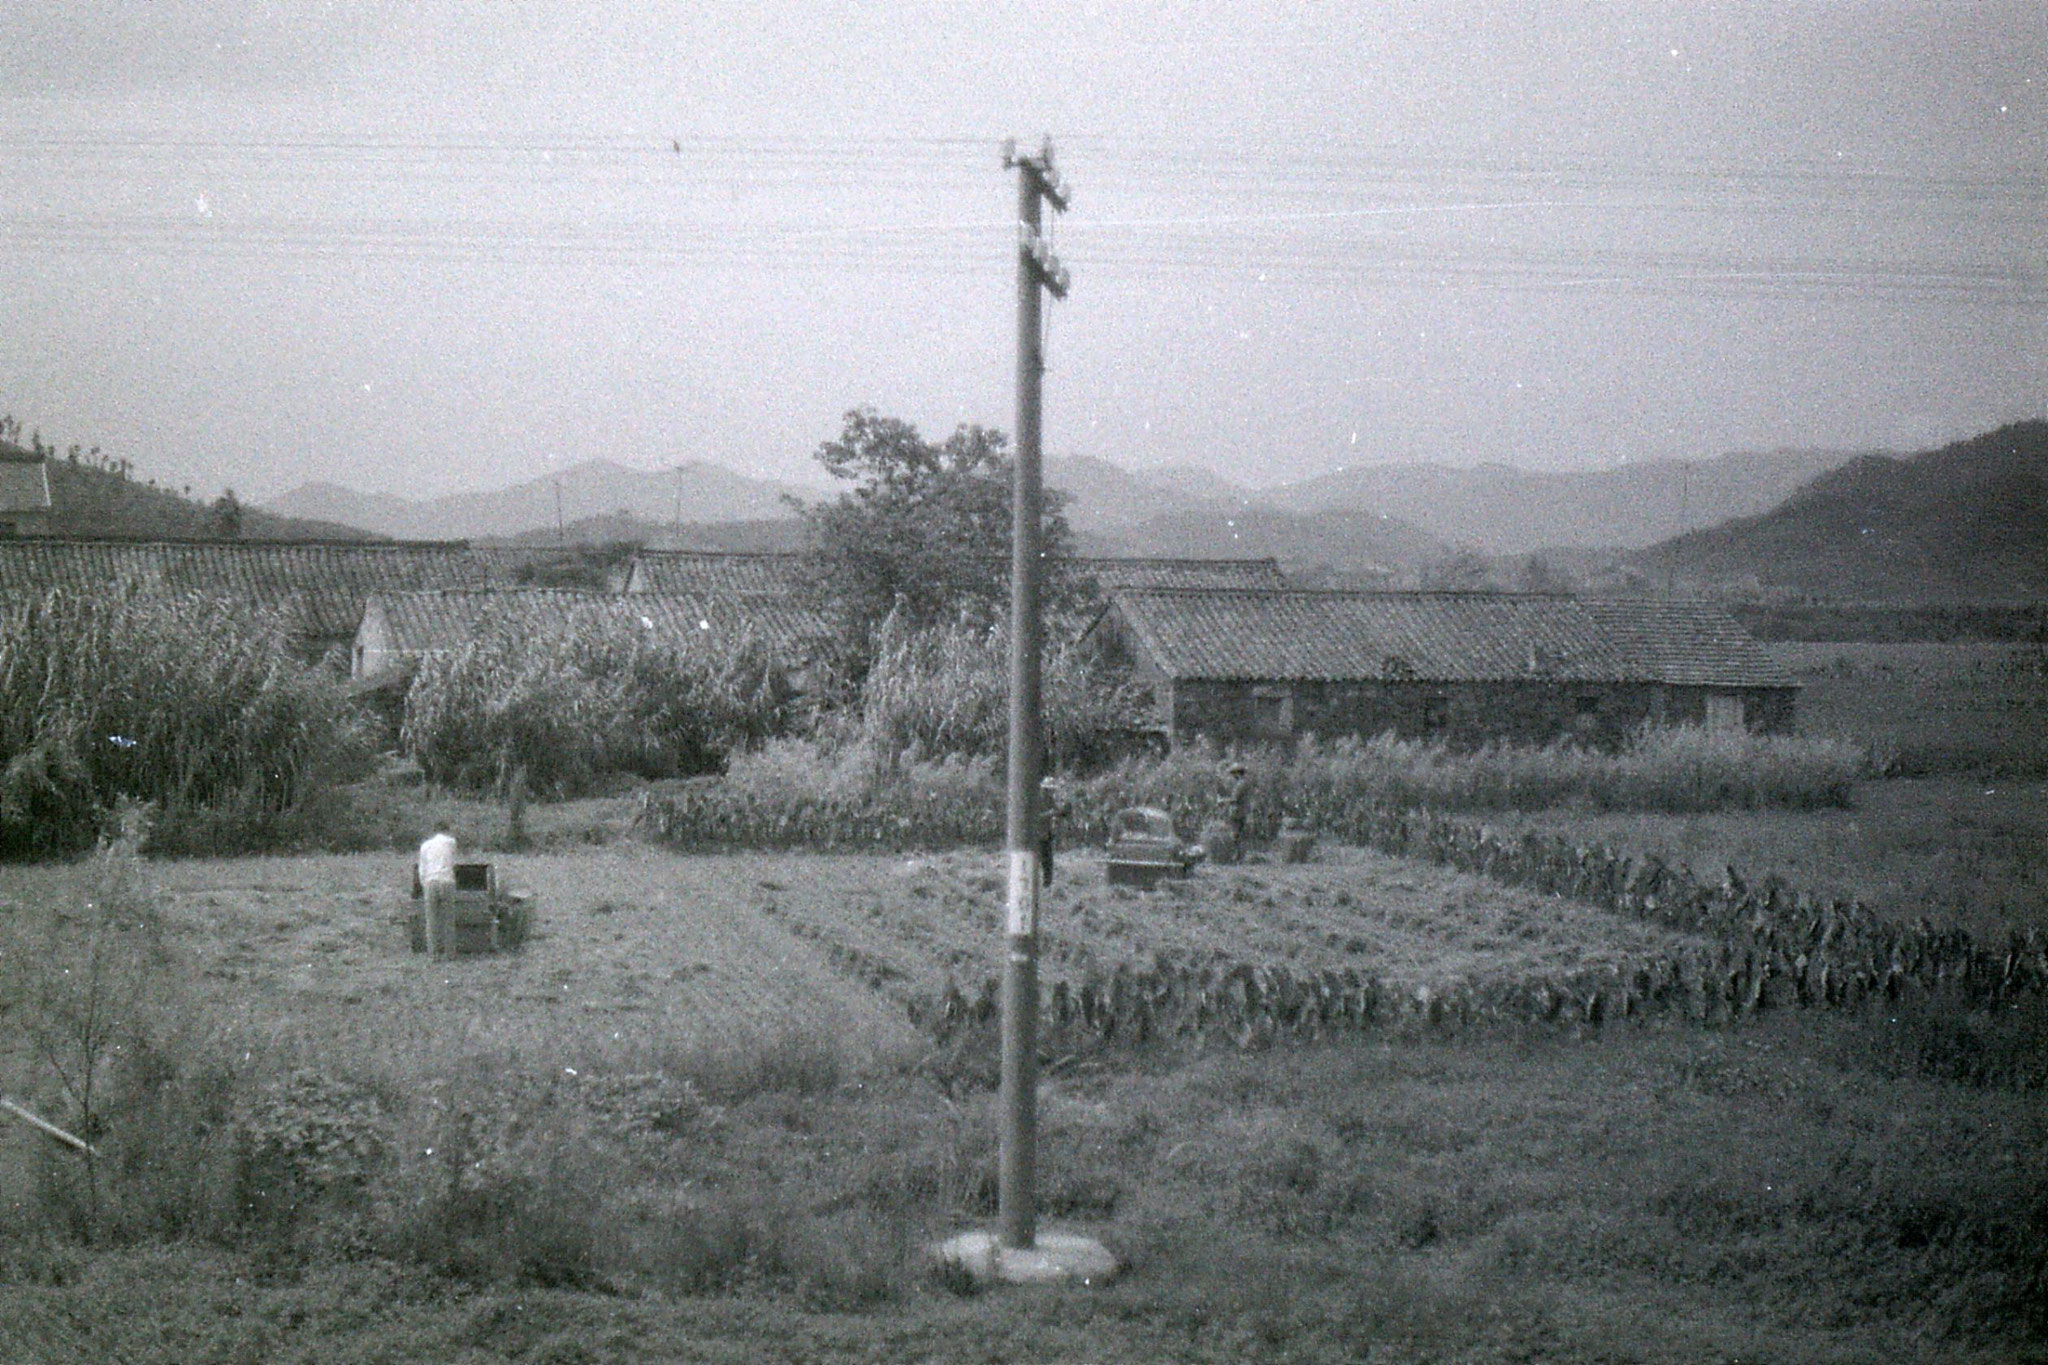 23/7/1989: 23: fields from train to Ningbo